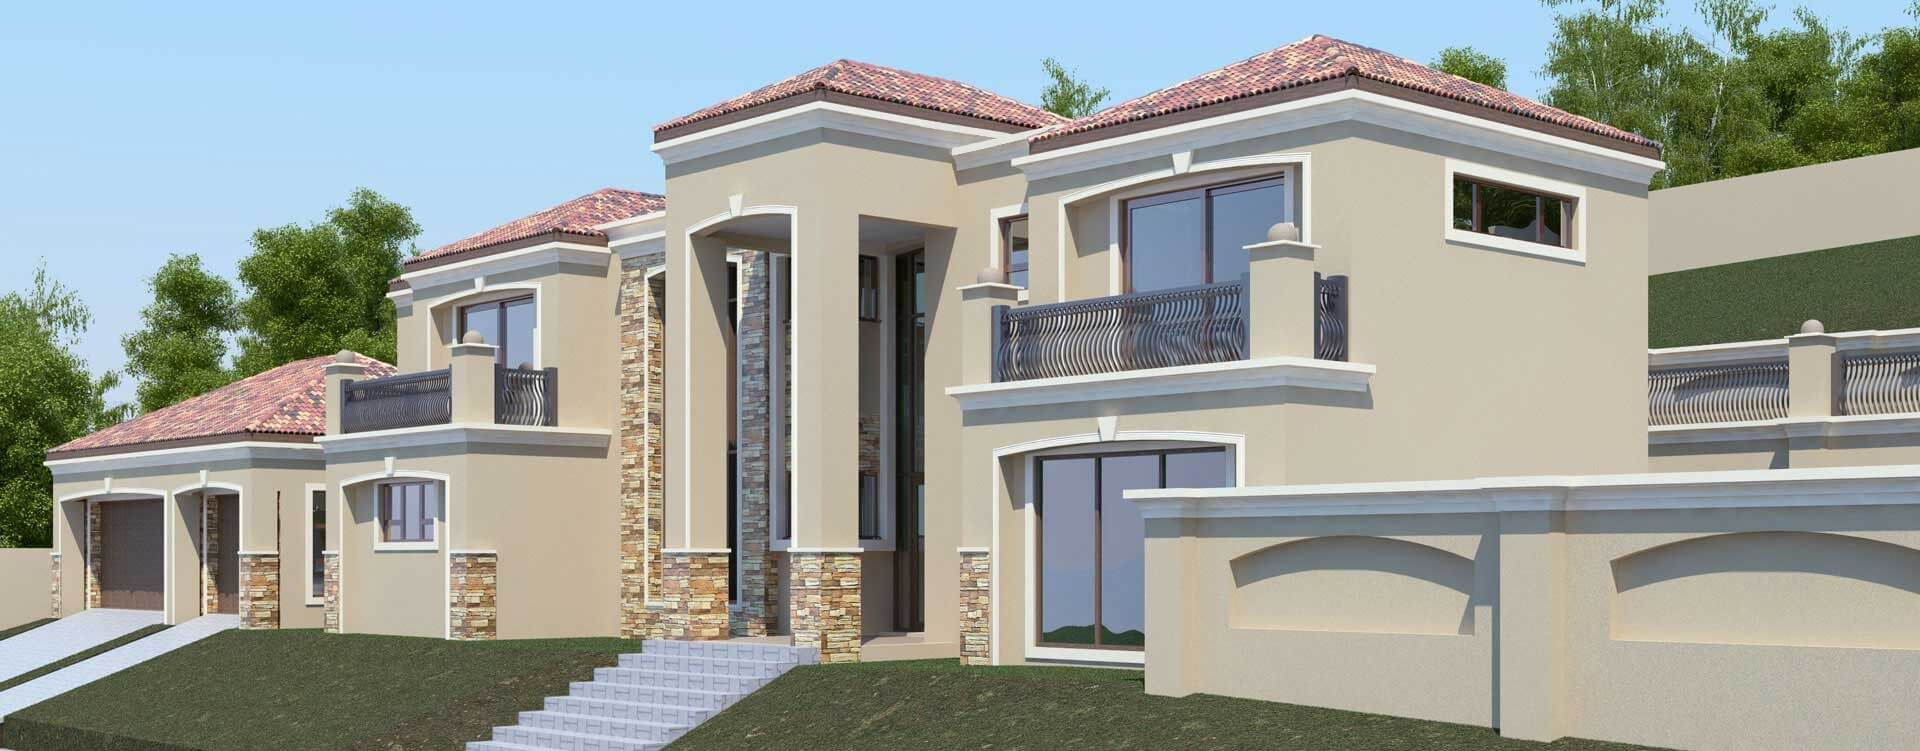 Affordable house plans to build in south africa for African home designs